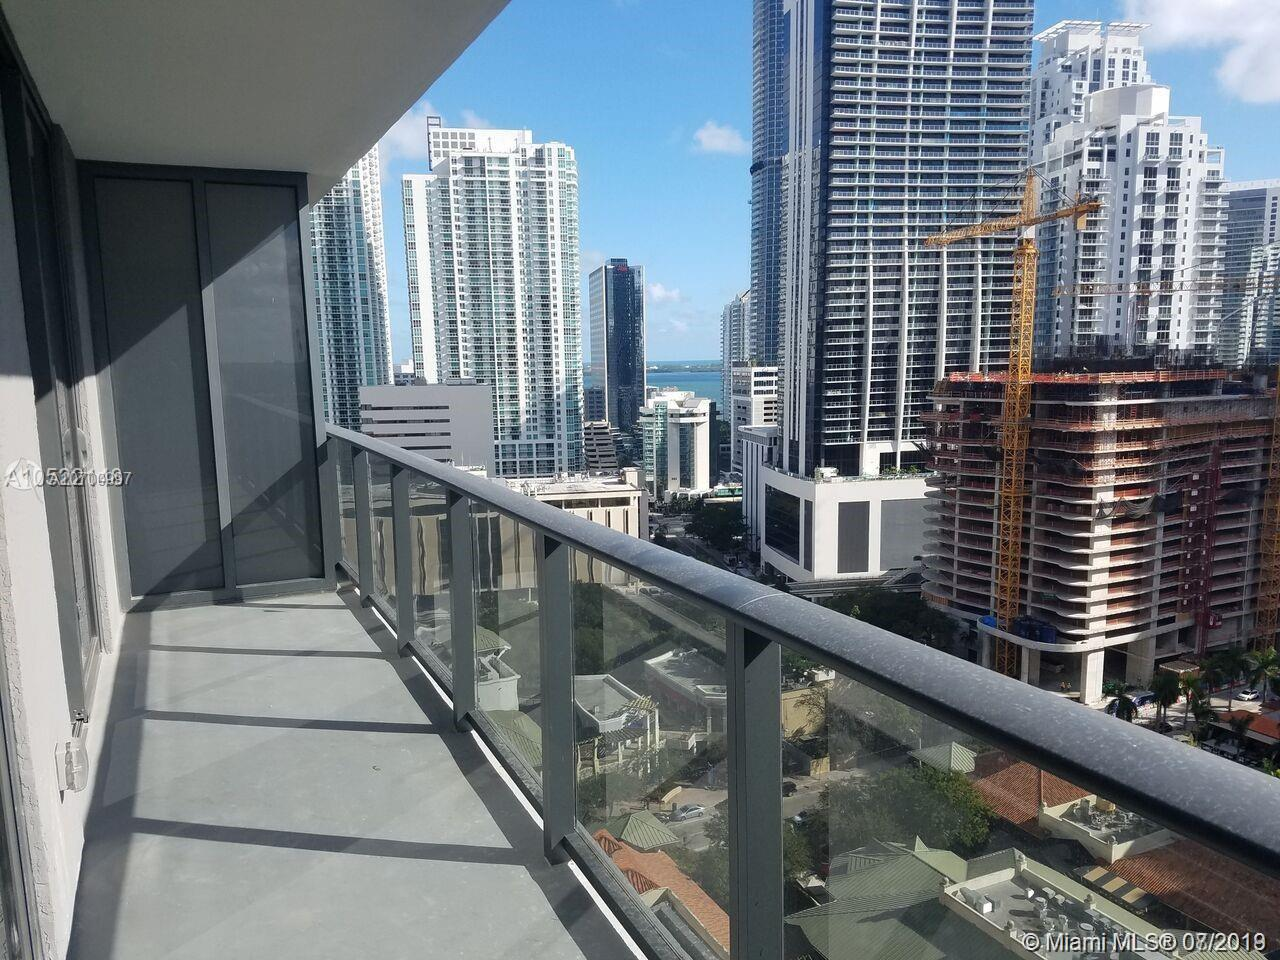 55 SW 9th St # 1805, Miami, Florida 33130, 1 Bedroom Bedrooms, ,2 BathroomsBathrooms,Residential,For Sale,55 SW 9th St # 1805,A10700997